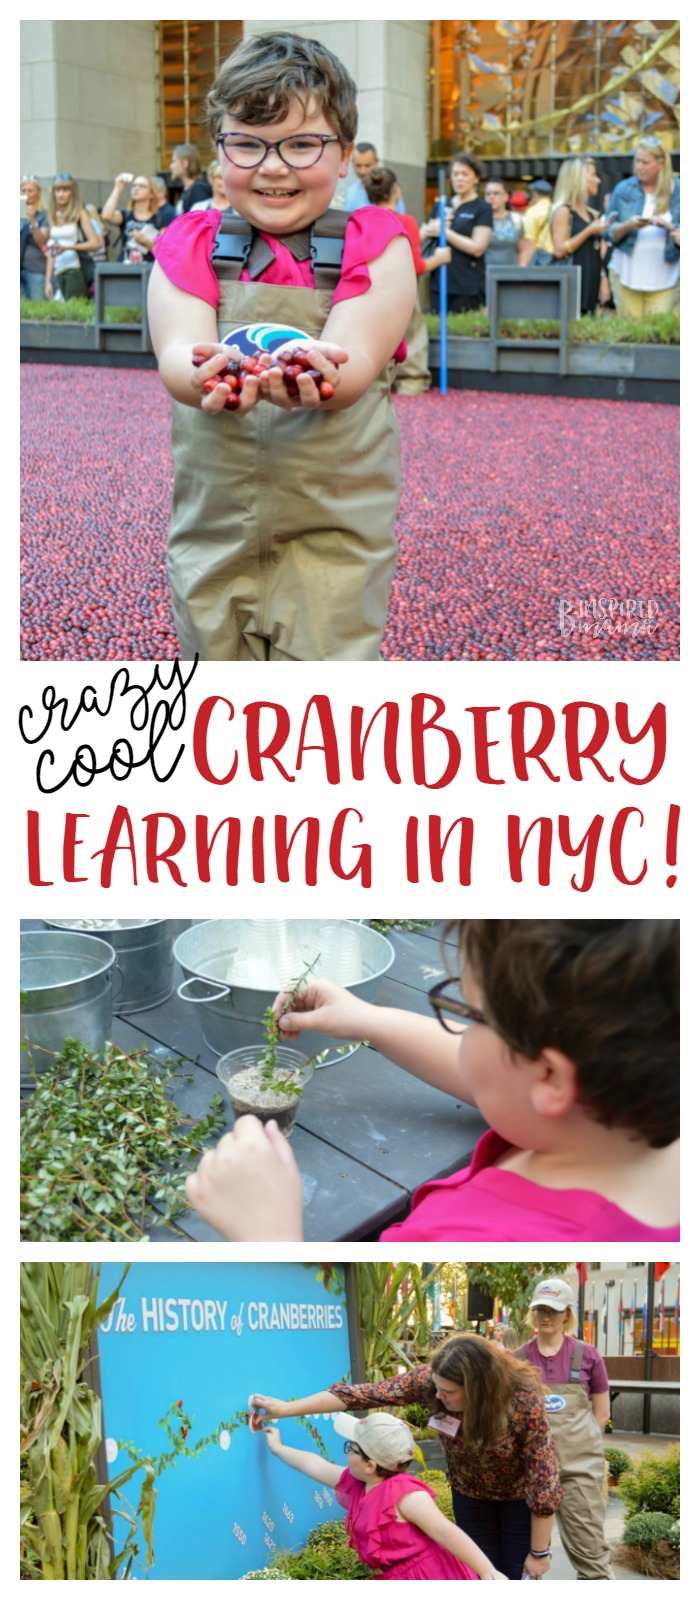 Check out all of our crazy-fun hands-on cranberry learning at Ocean Spray's #CranberryClassroom in NYC + learn how to make Orange Cranberry muffins, too! - #cranberries #recipe #yum #fall #learning #kids #kbn #binspiredmama